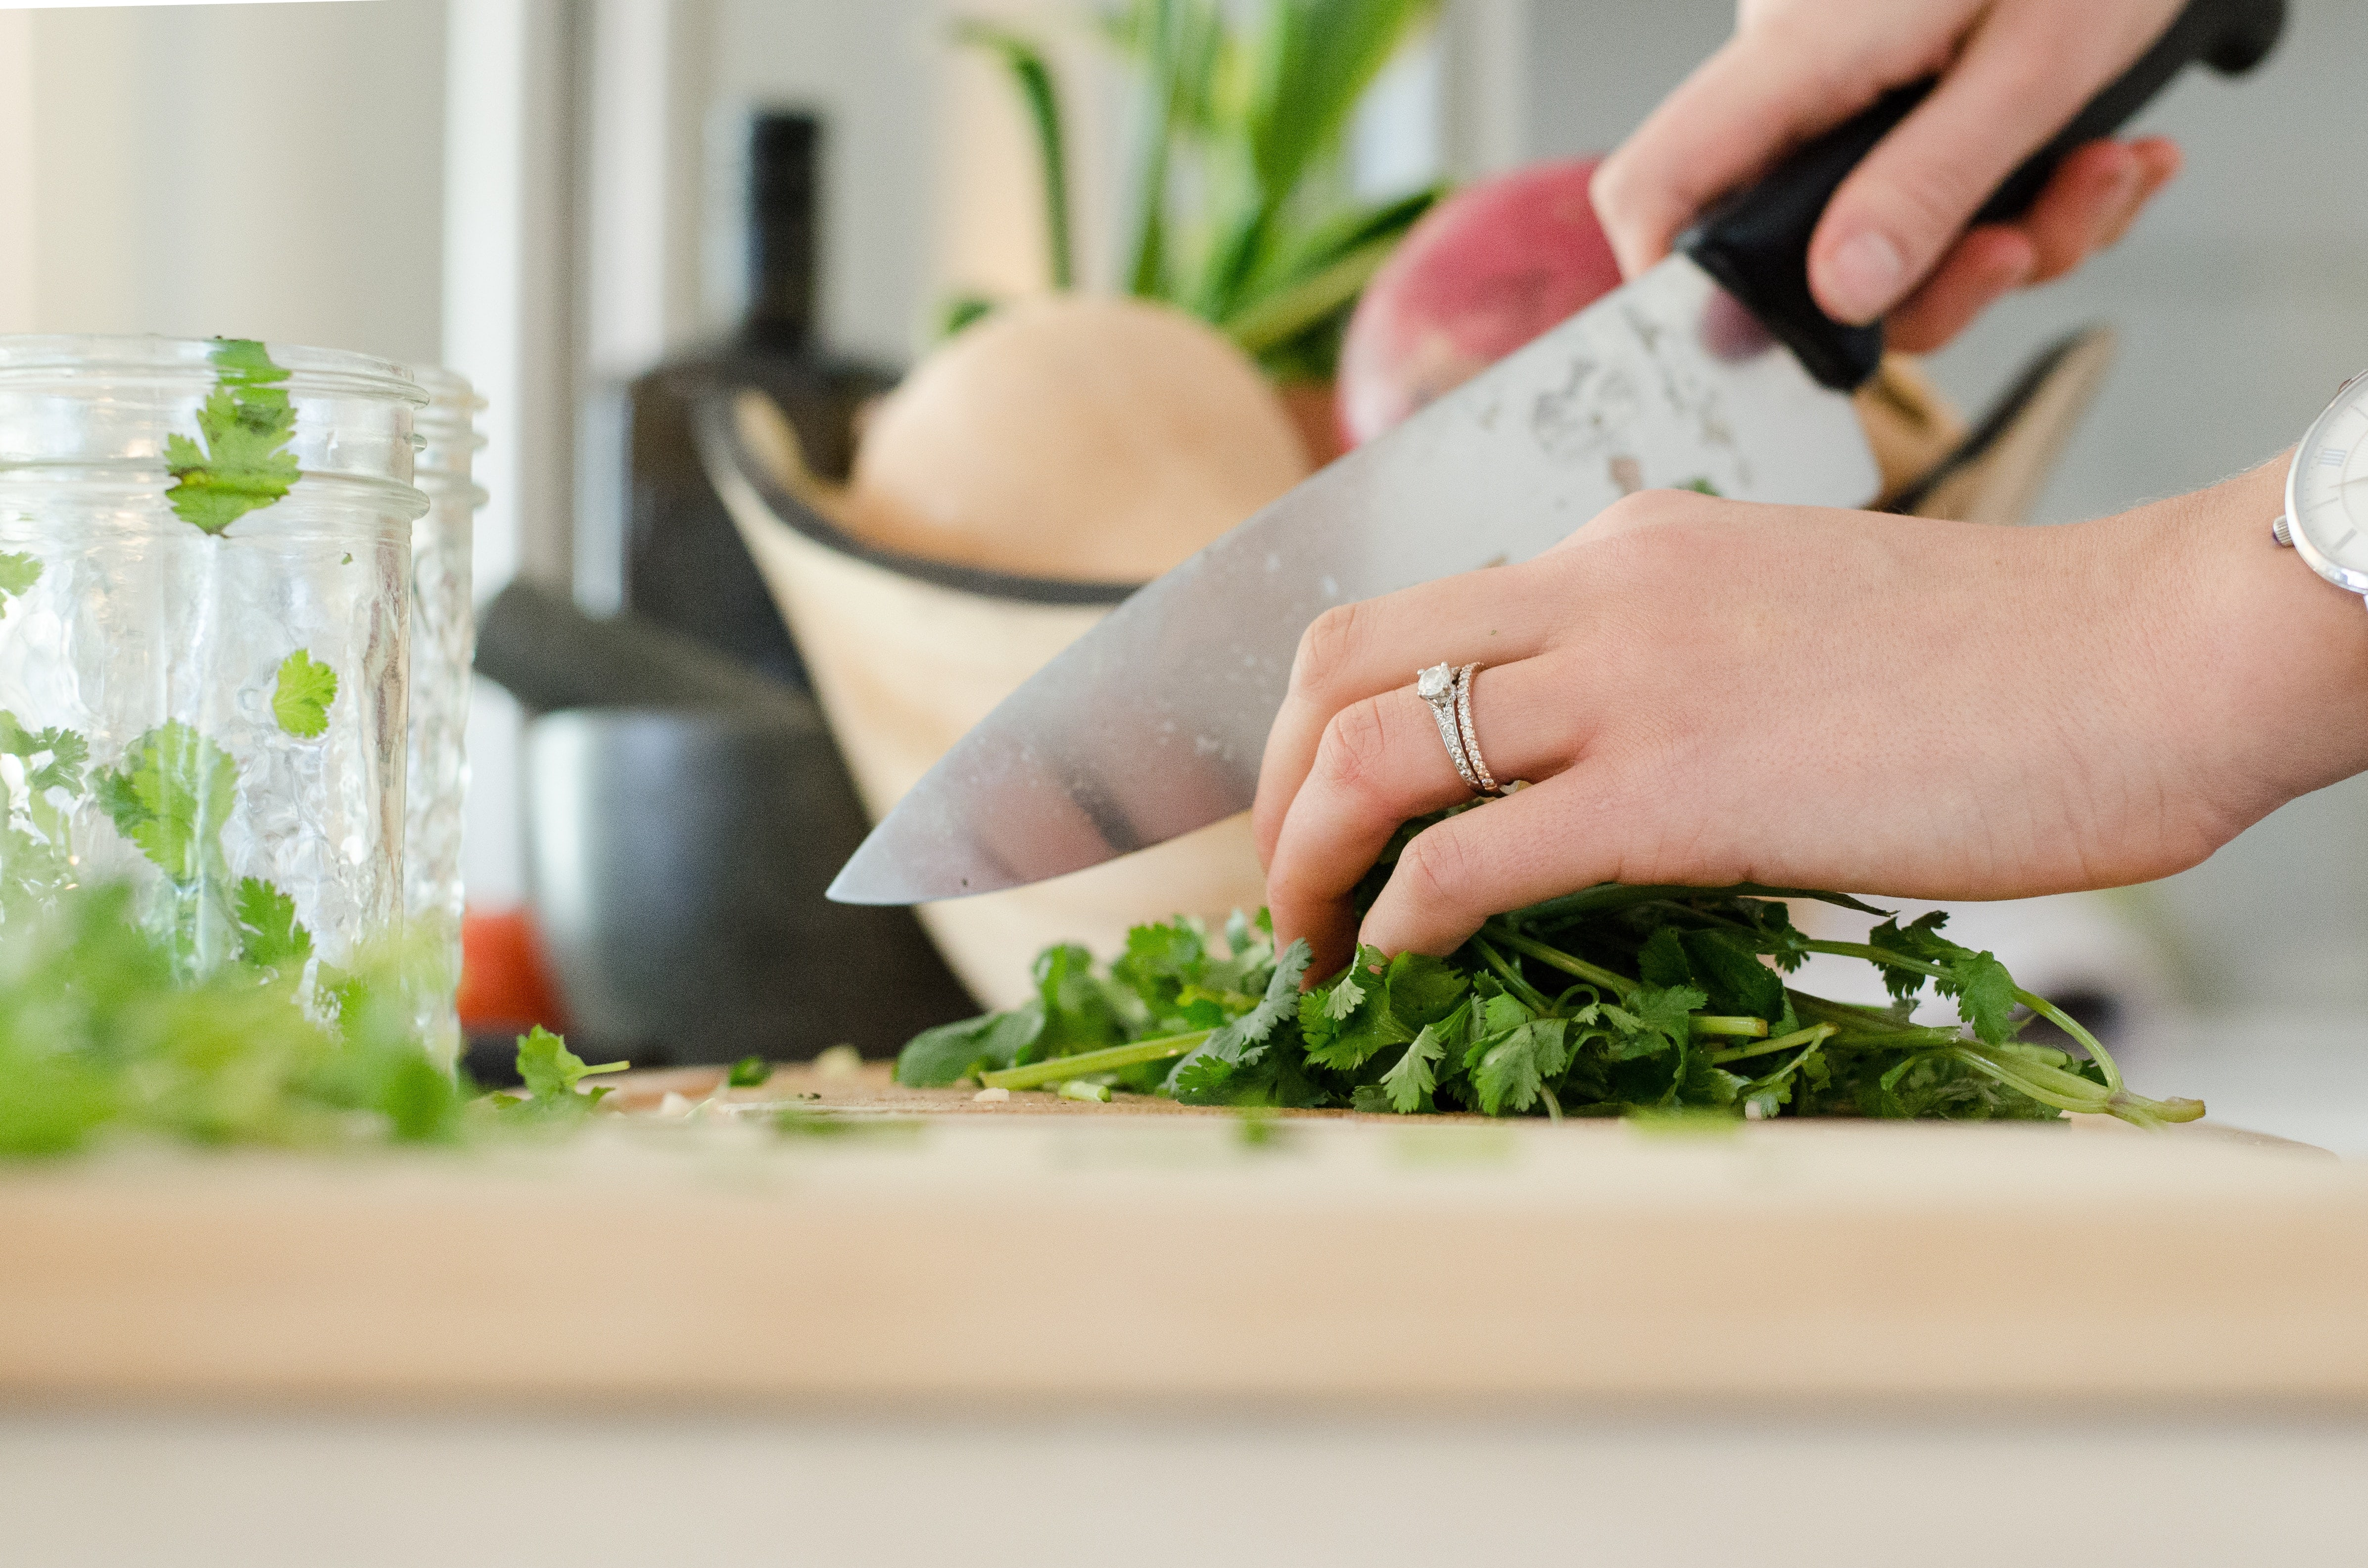 Creating a mindful kitchen is easier than you think!